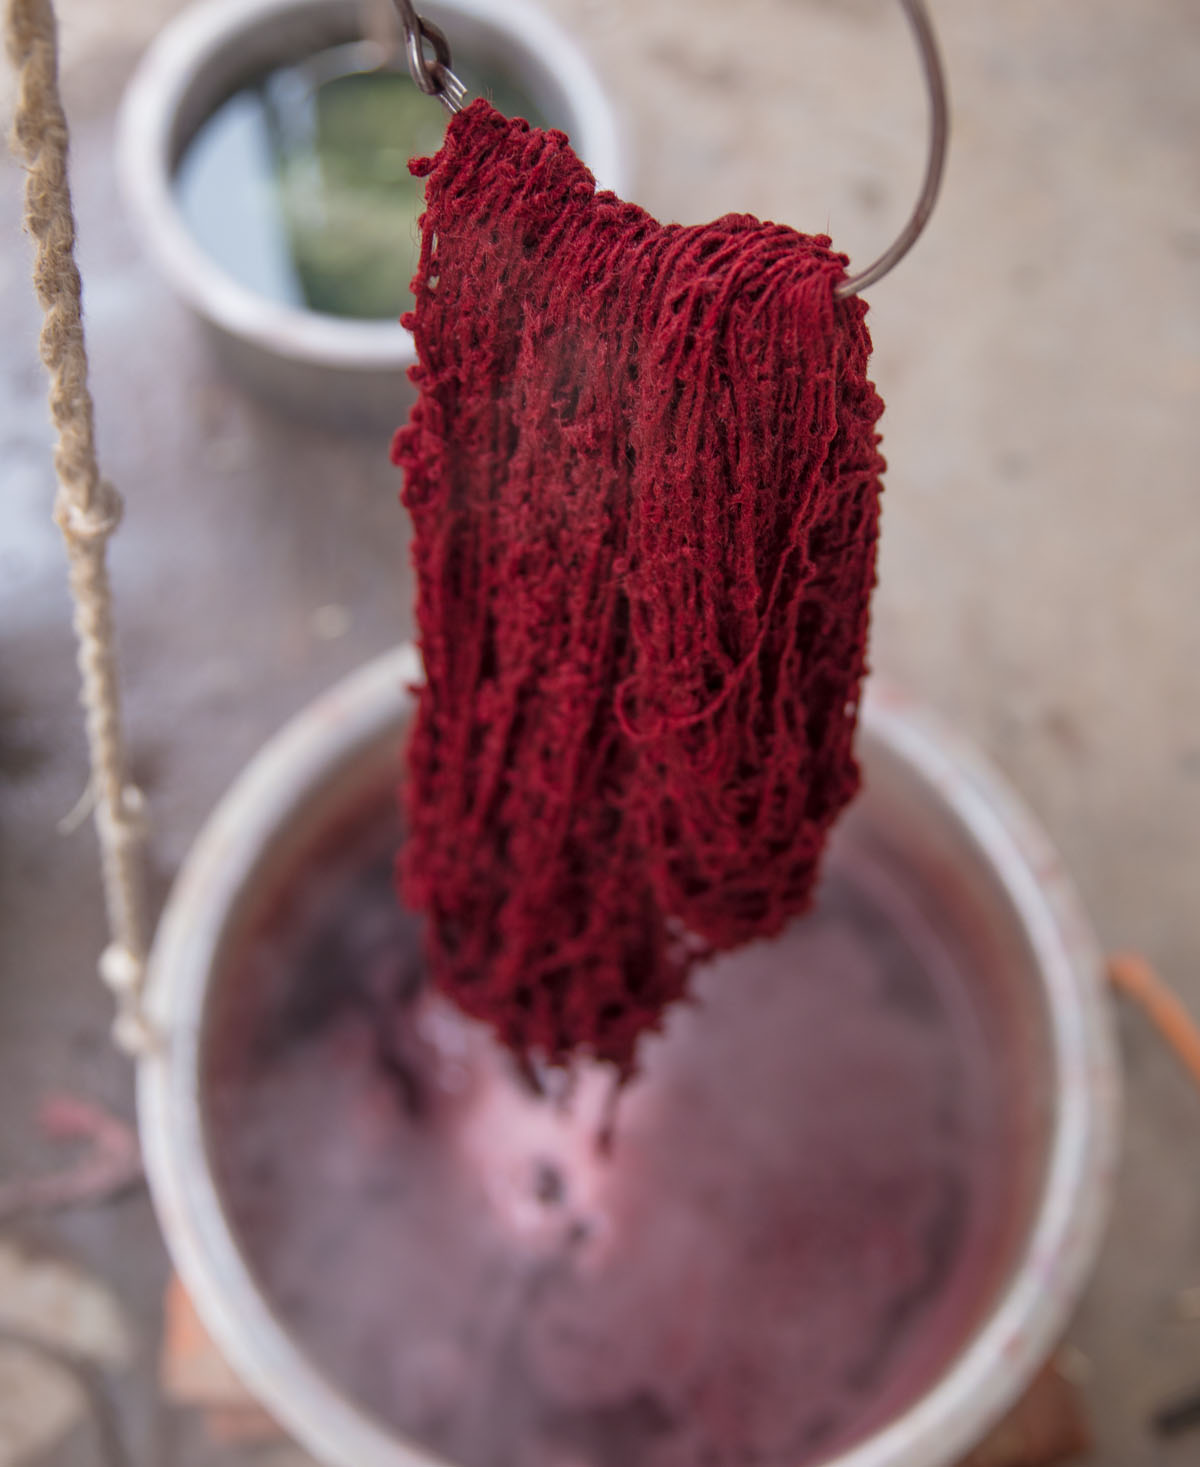 Dyed using traditional techniques